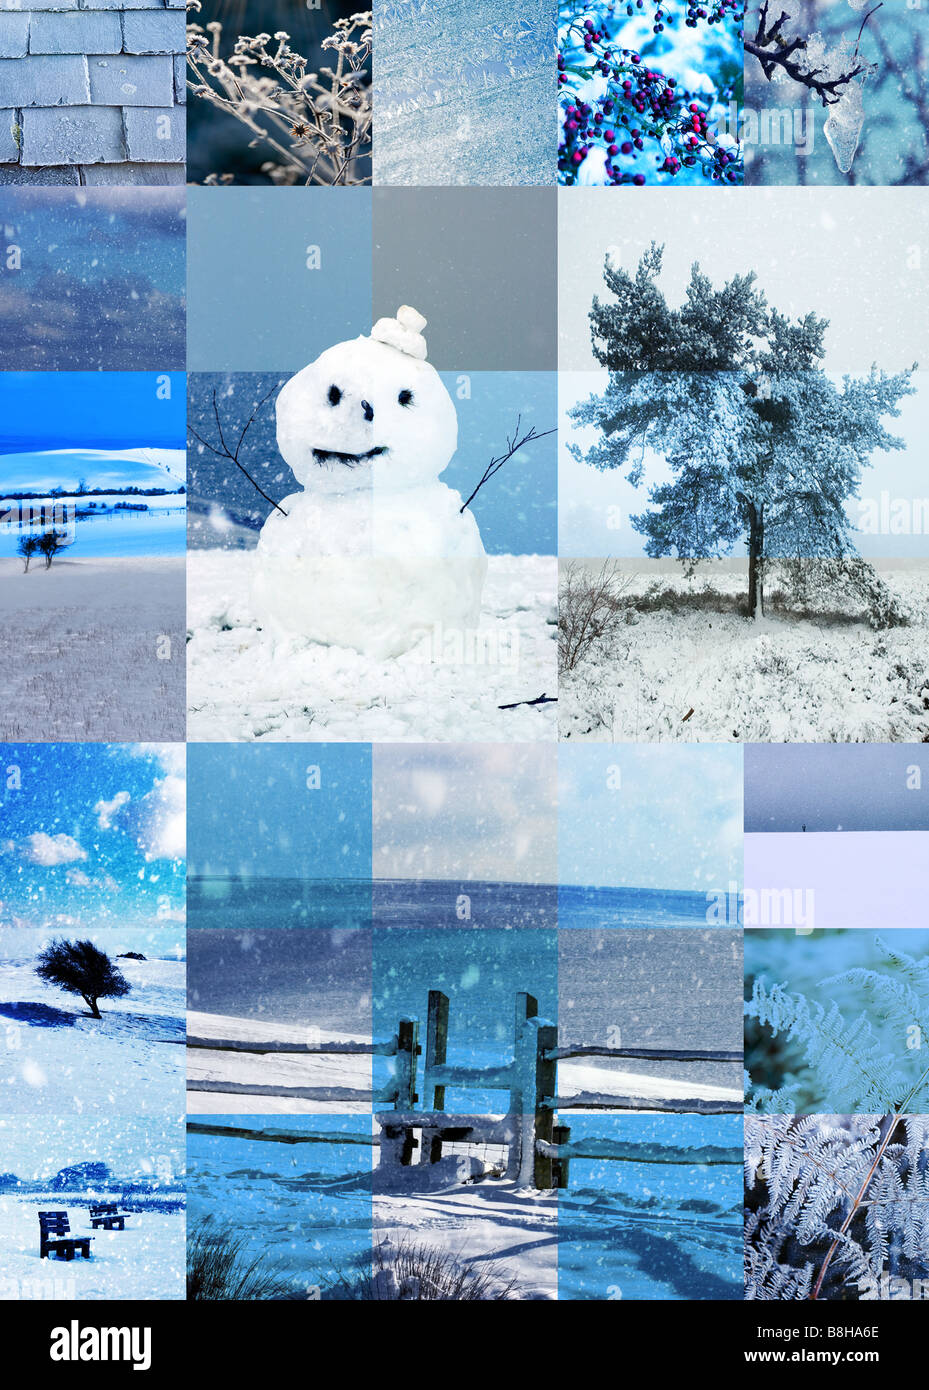 Illustraion of snow british scenes and icons - Stock Image